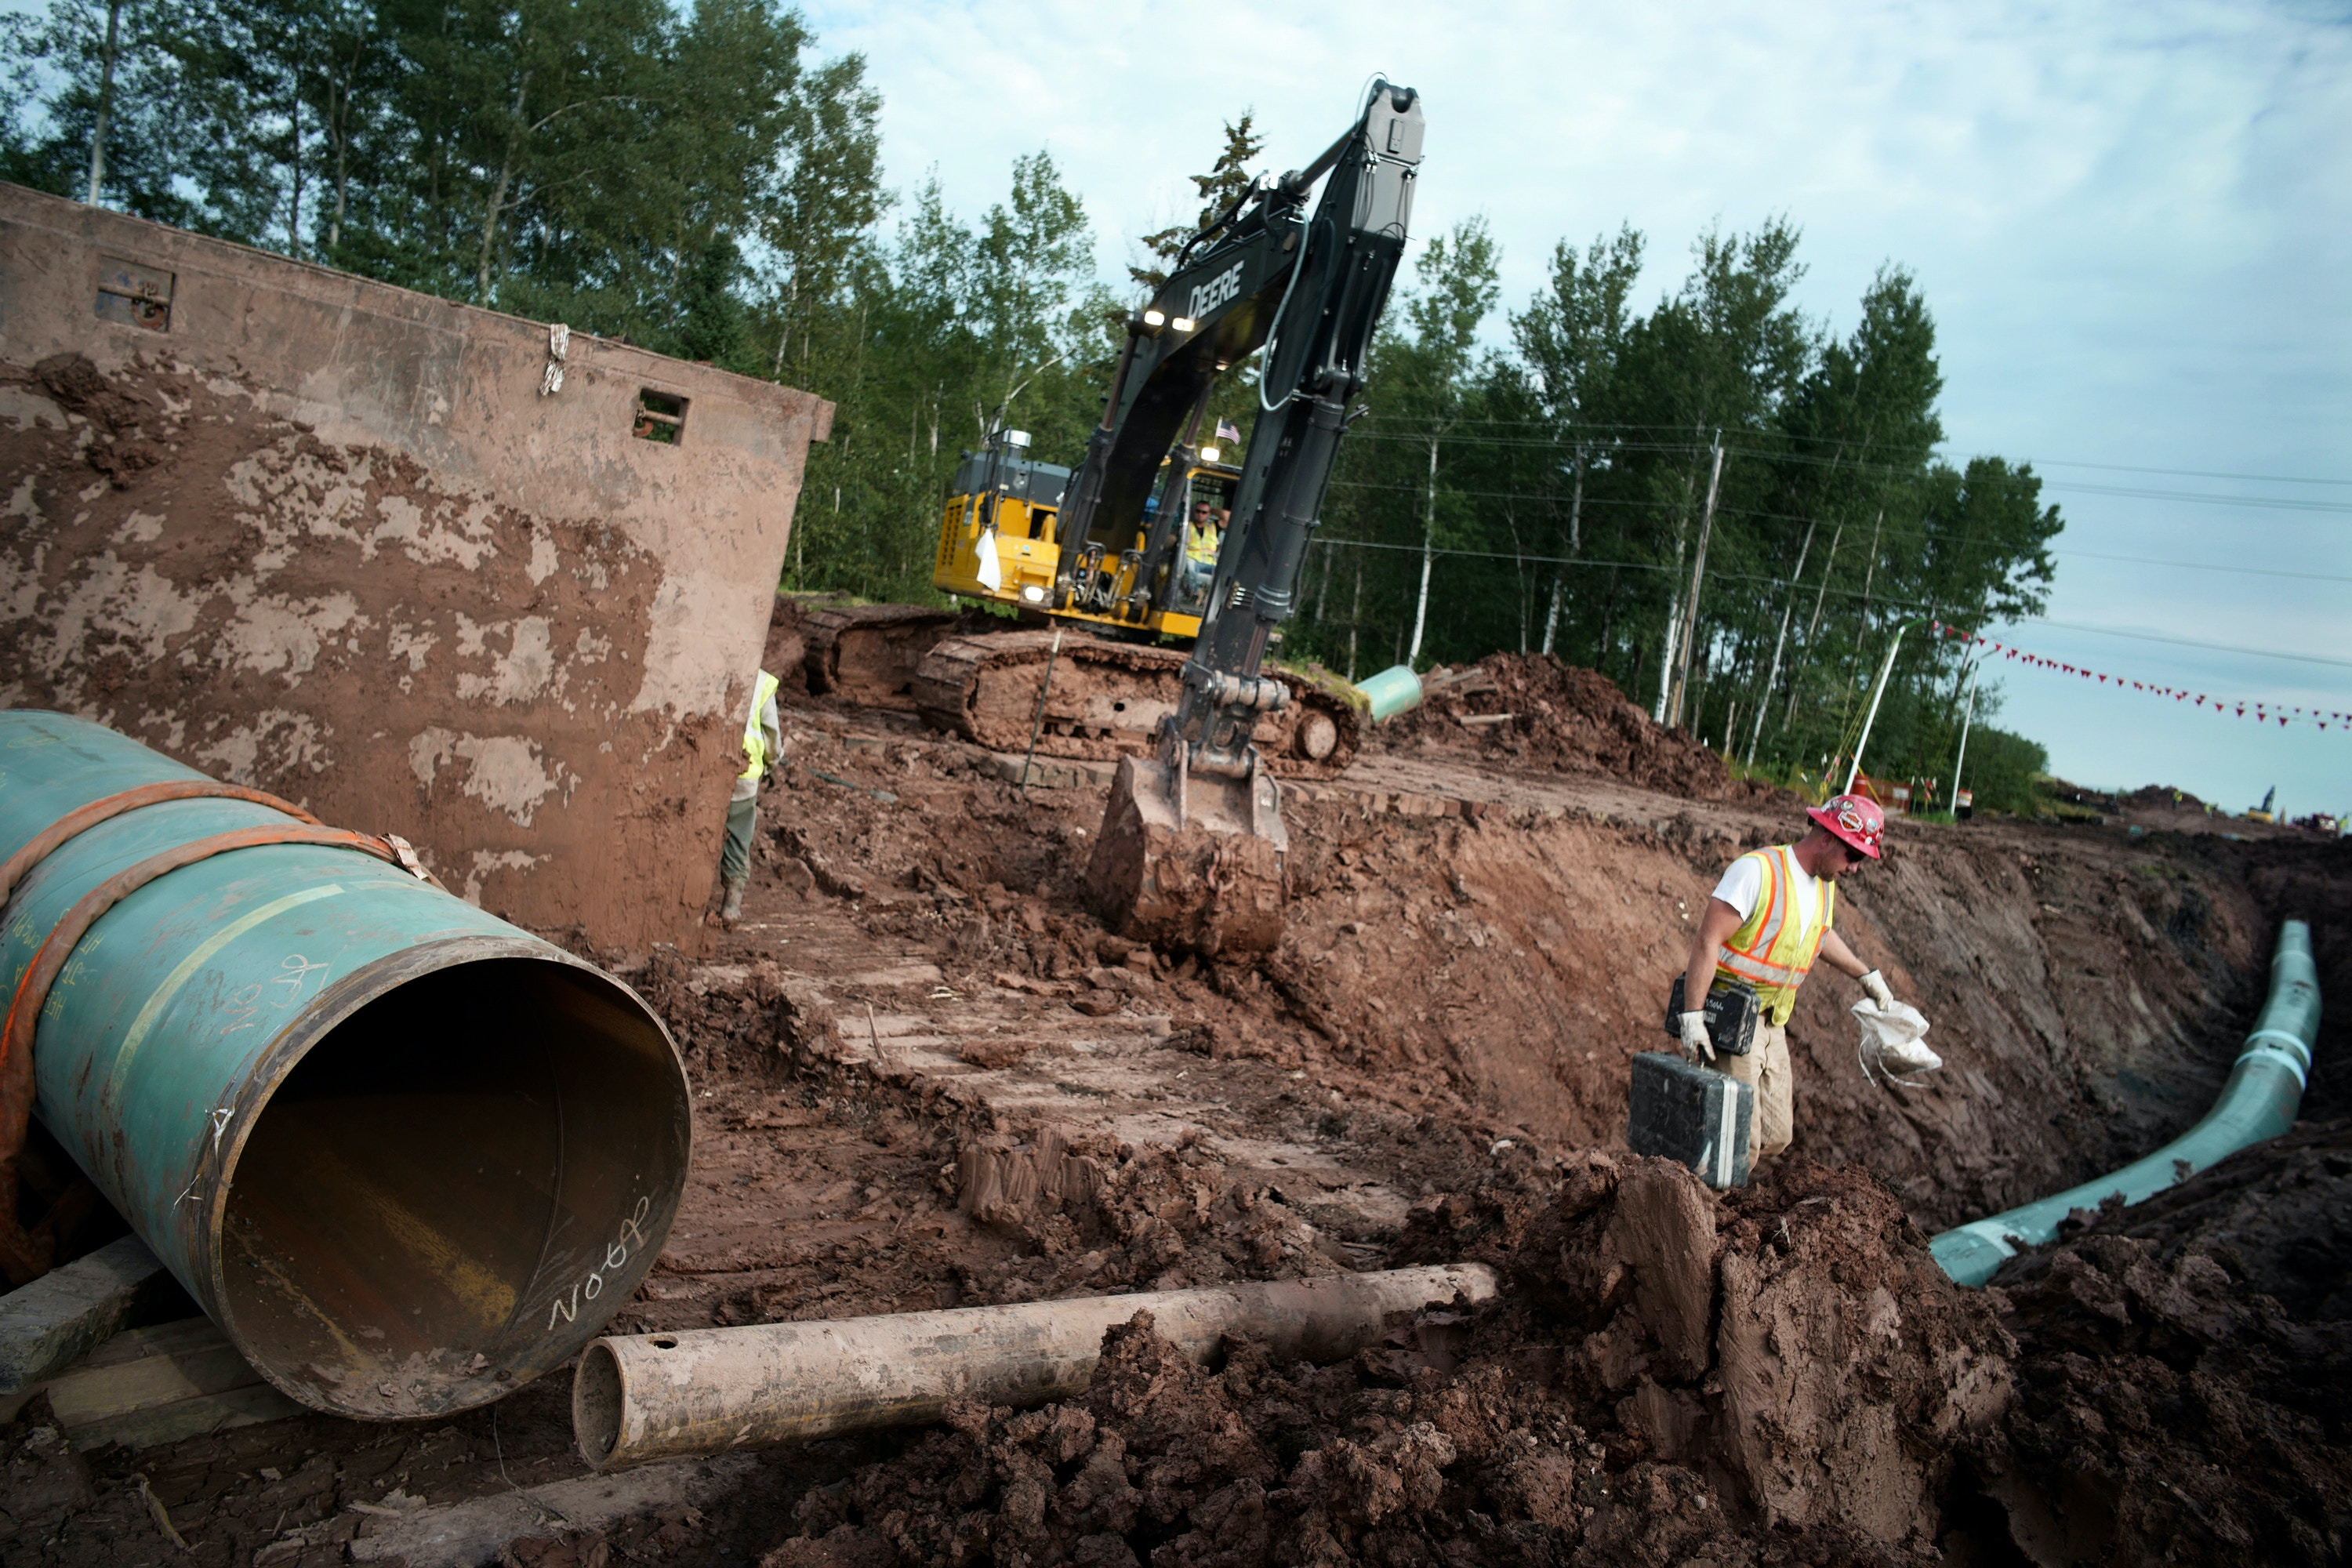 In an Aug. 21, 2017 photo, workers make sure that each section of the replacement Line 3 that is joined passes muster. Enbridge already has started building the 14-mile stretch of Line 3 from the Minnesota line to its terminal in Superior, Wis. In filings with the Public Utilities Commission Monday, Sept. 11, The Minnesota Department of Commerce says Enbridge Energy has failed to establish the need for its proposal to replace its aging Line 3 crude oil pipeline across northern Minnesota. Instead, the department says it might be better to just shut down the existing line.  (Richard Tsong-Taatarii/Star Tribune via AP)